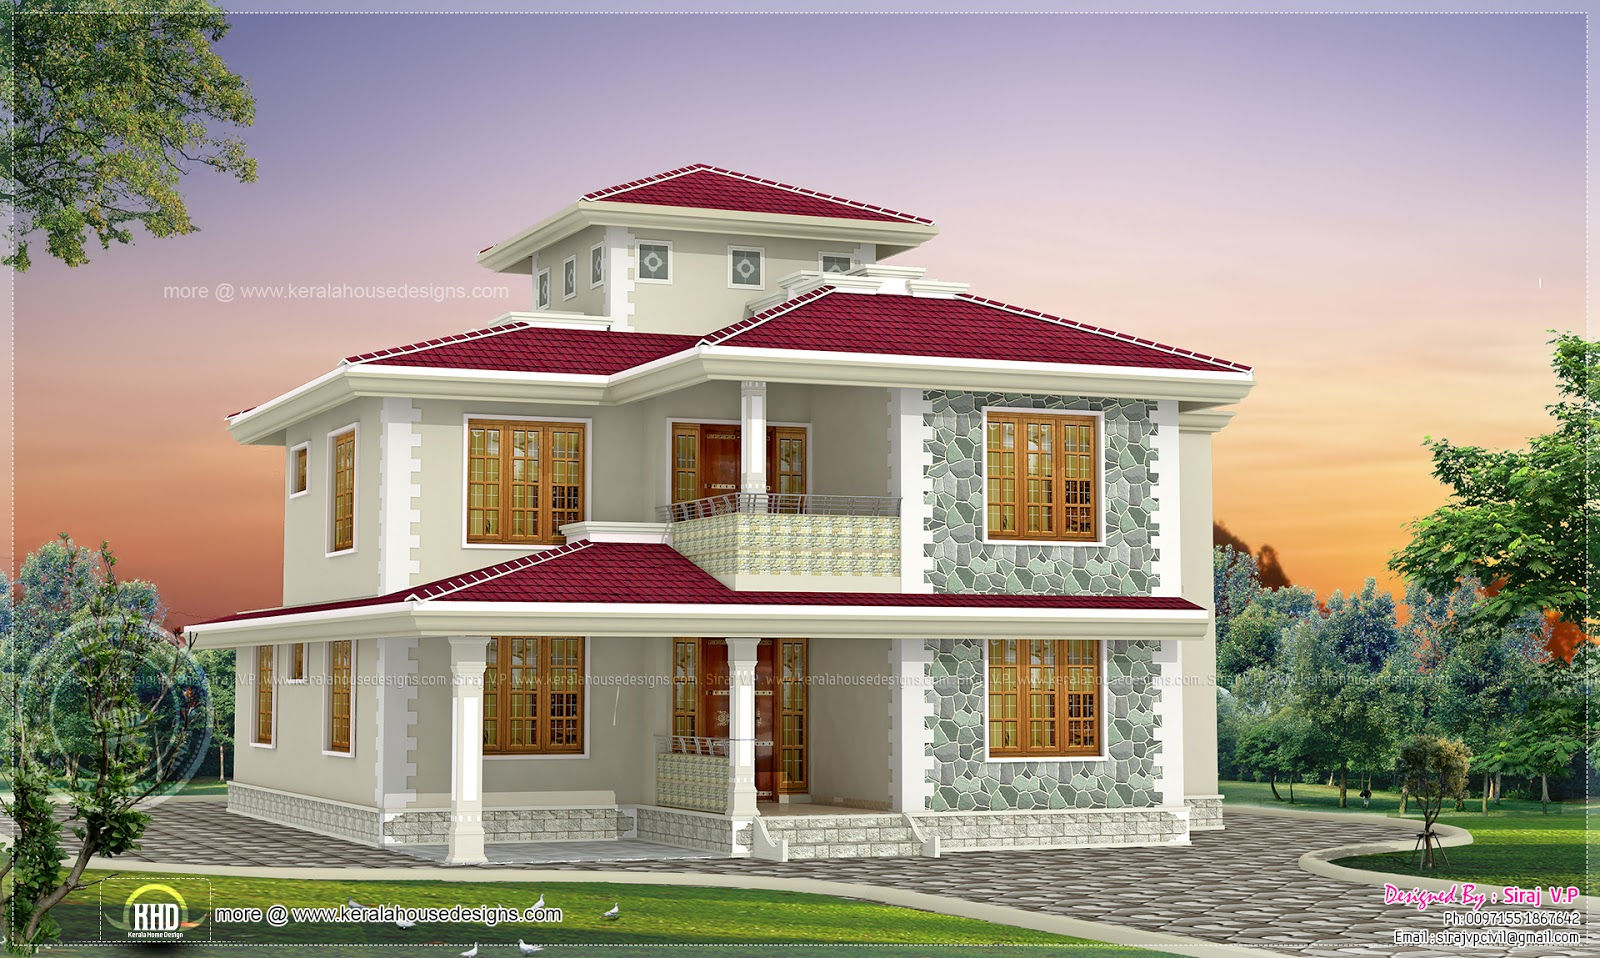 4 Bhk Kerala Style Home Design Kerala Home Design And